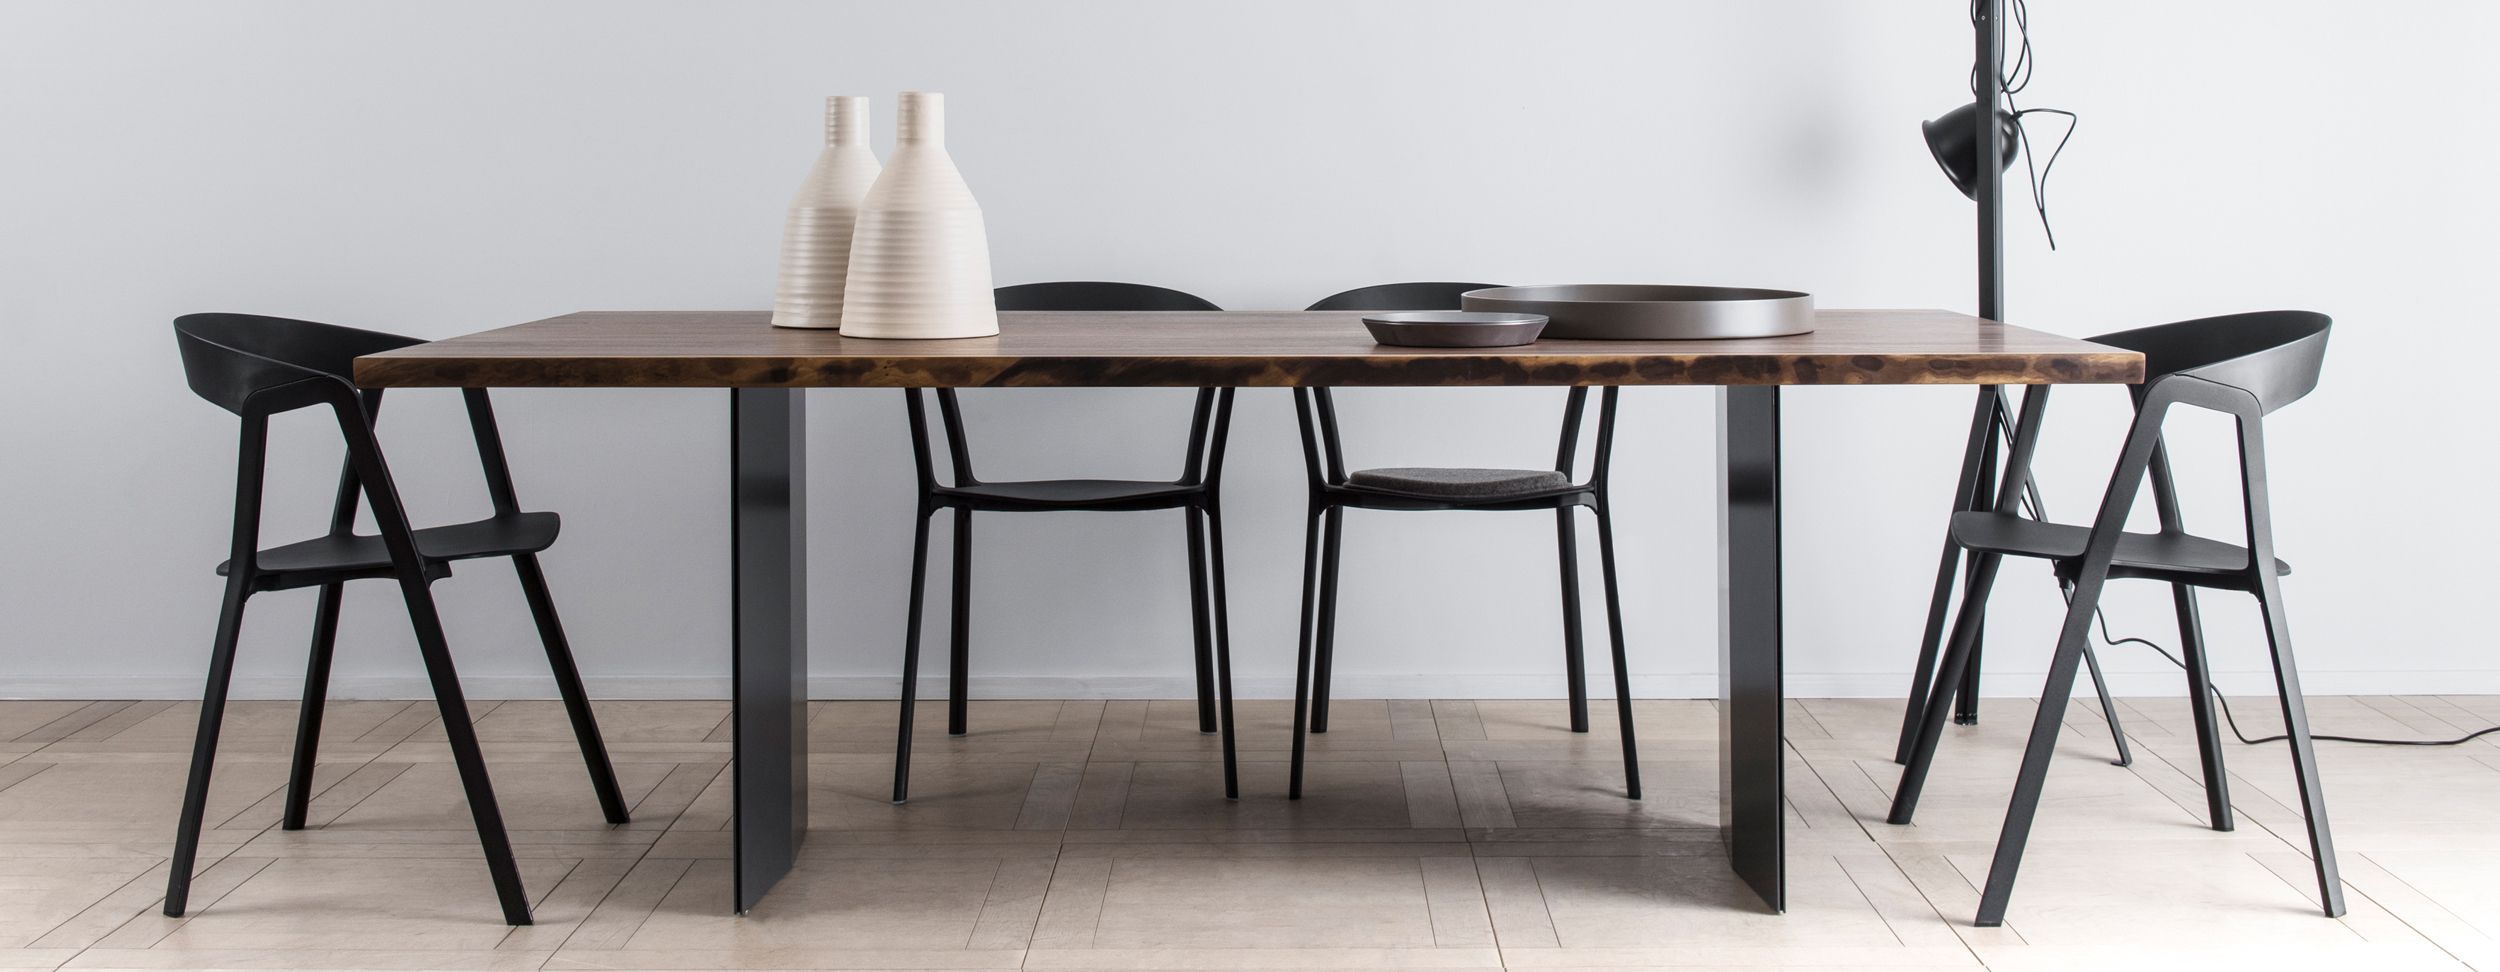 Designer Dining Tables Sydney Melbourne